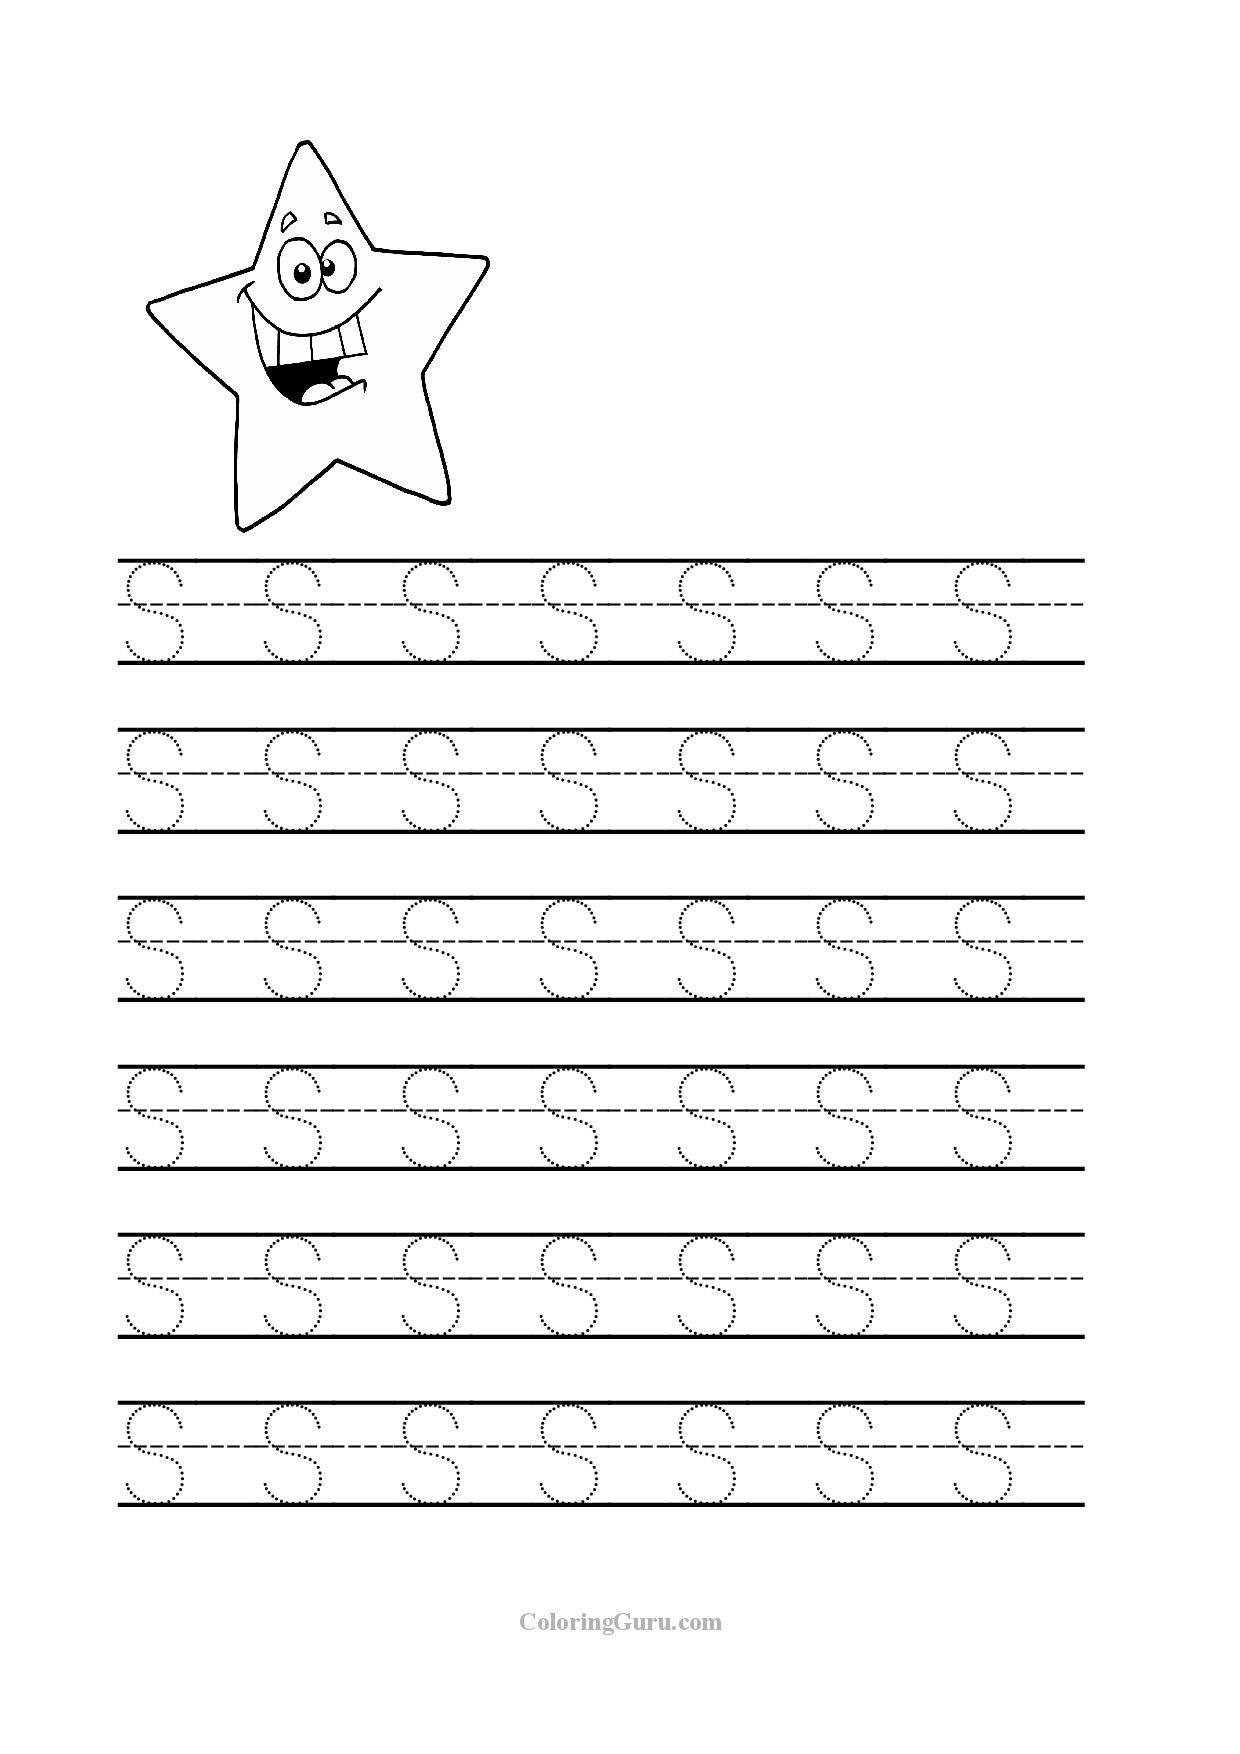 Free Printable Tracing Letter S Worksheets For Preschool in Free Alphabet Tracing Letters